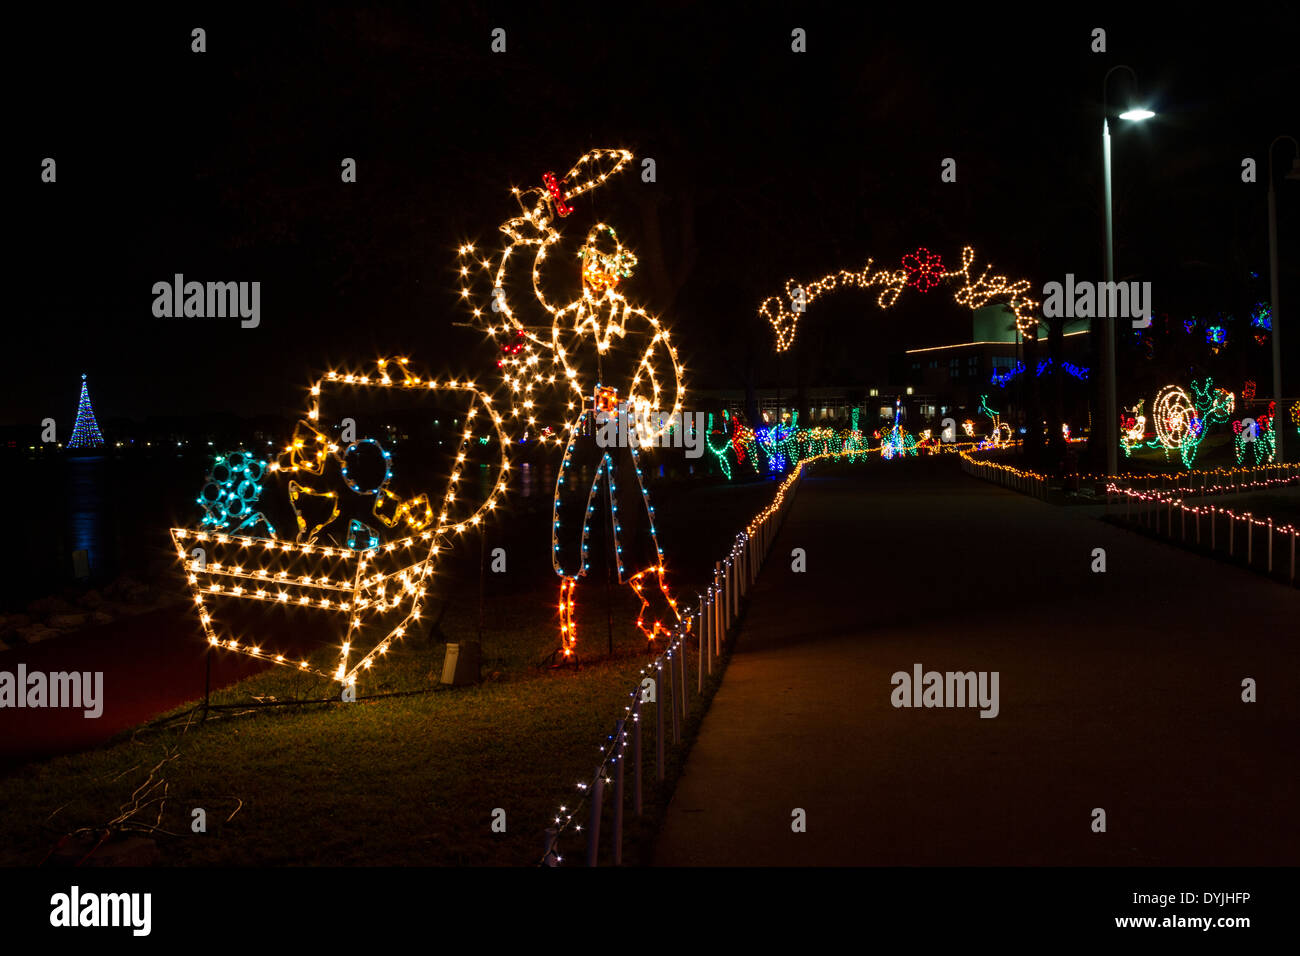 Christmas Lights And Displays At Moody Gardens In